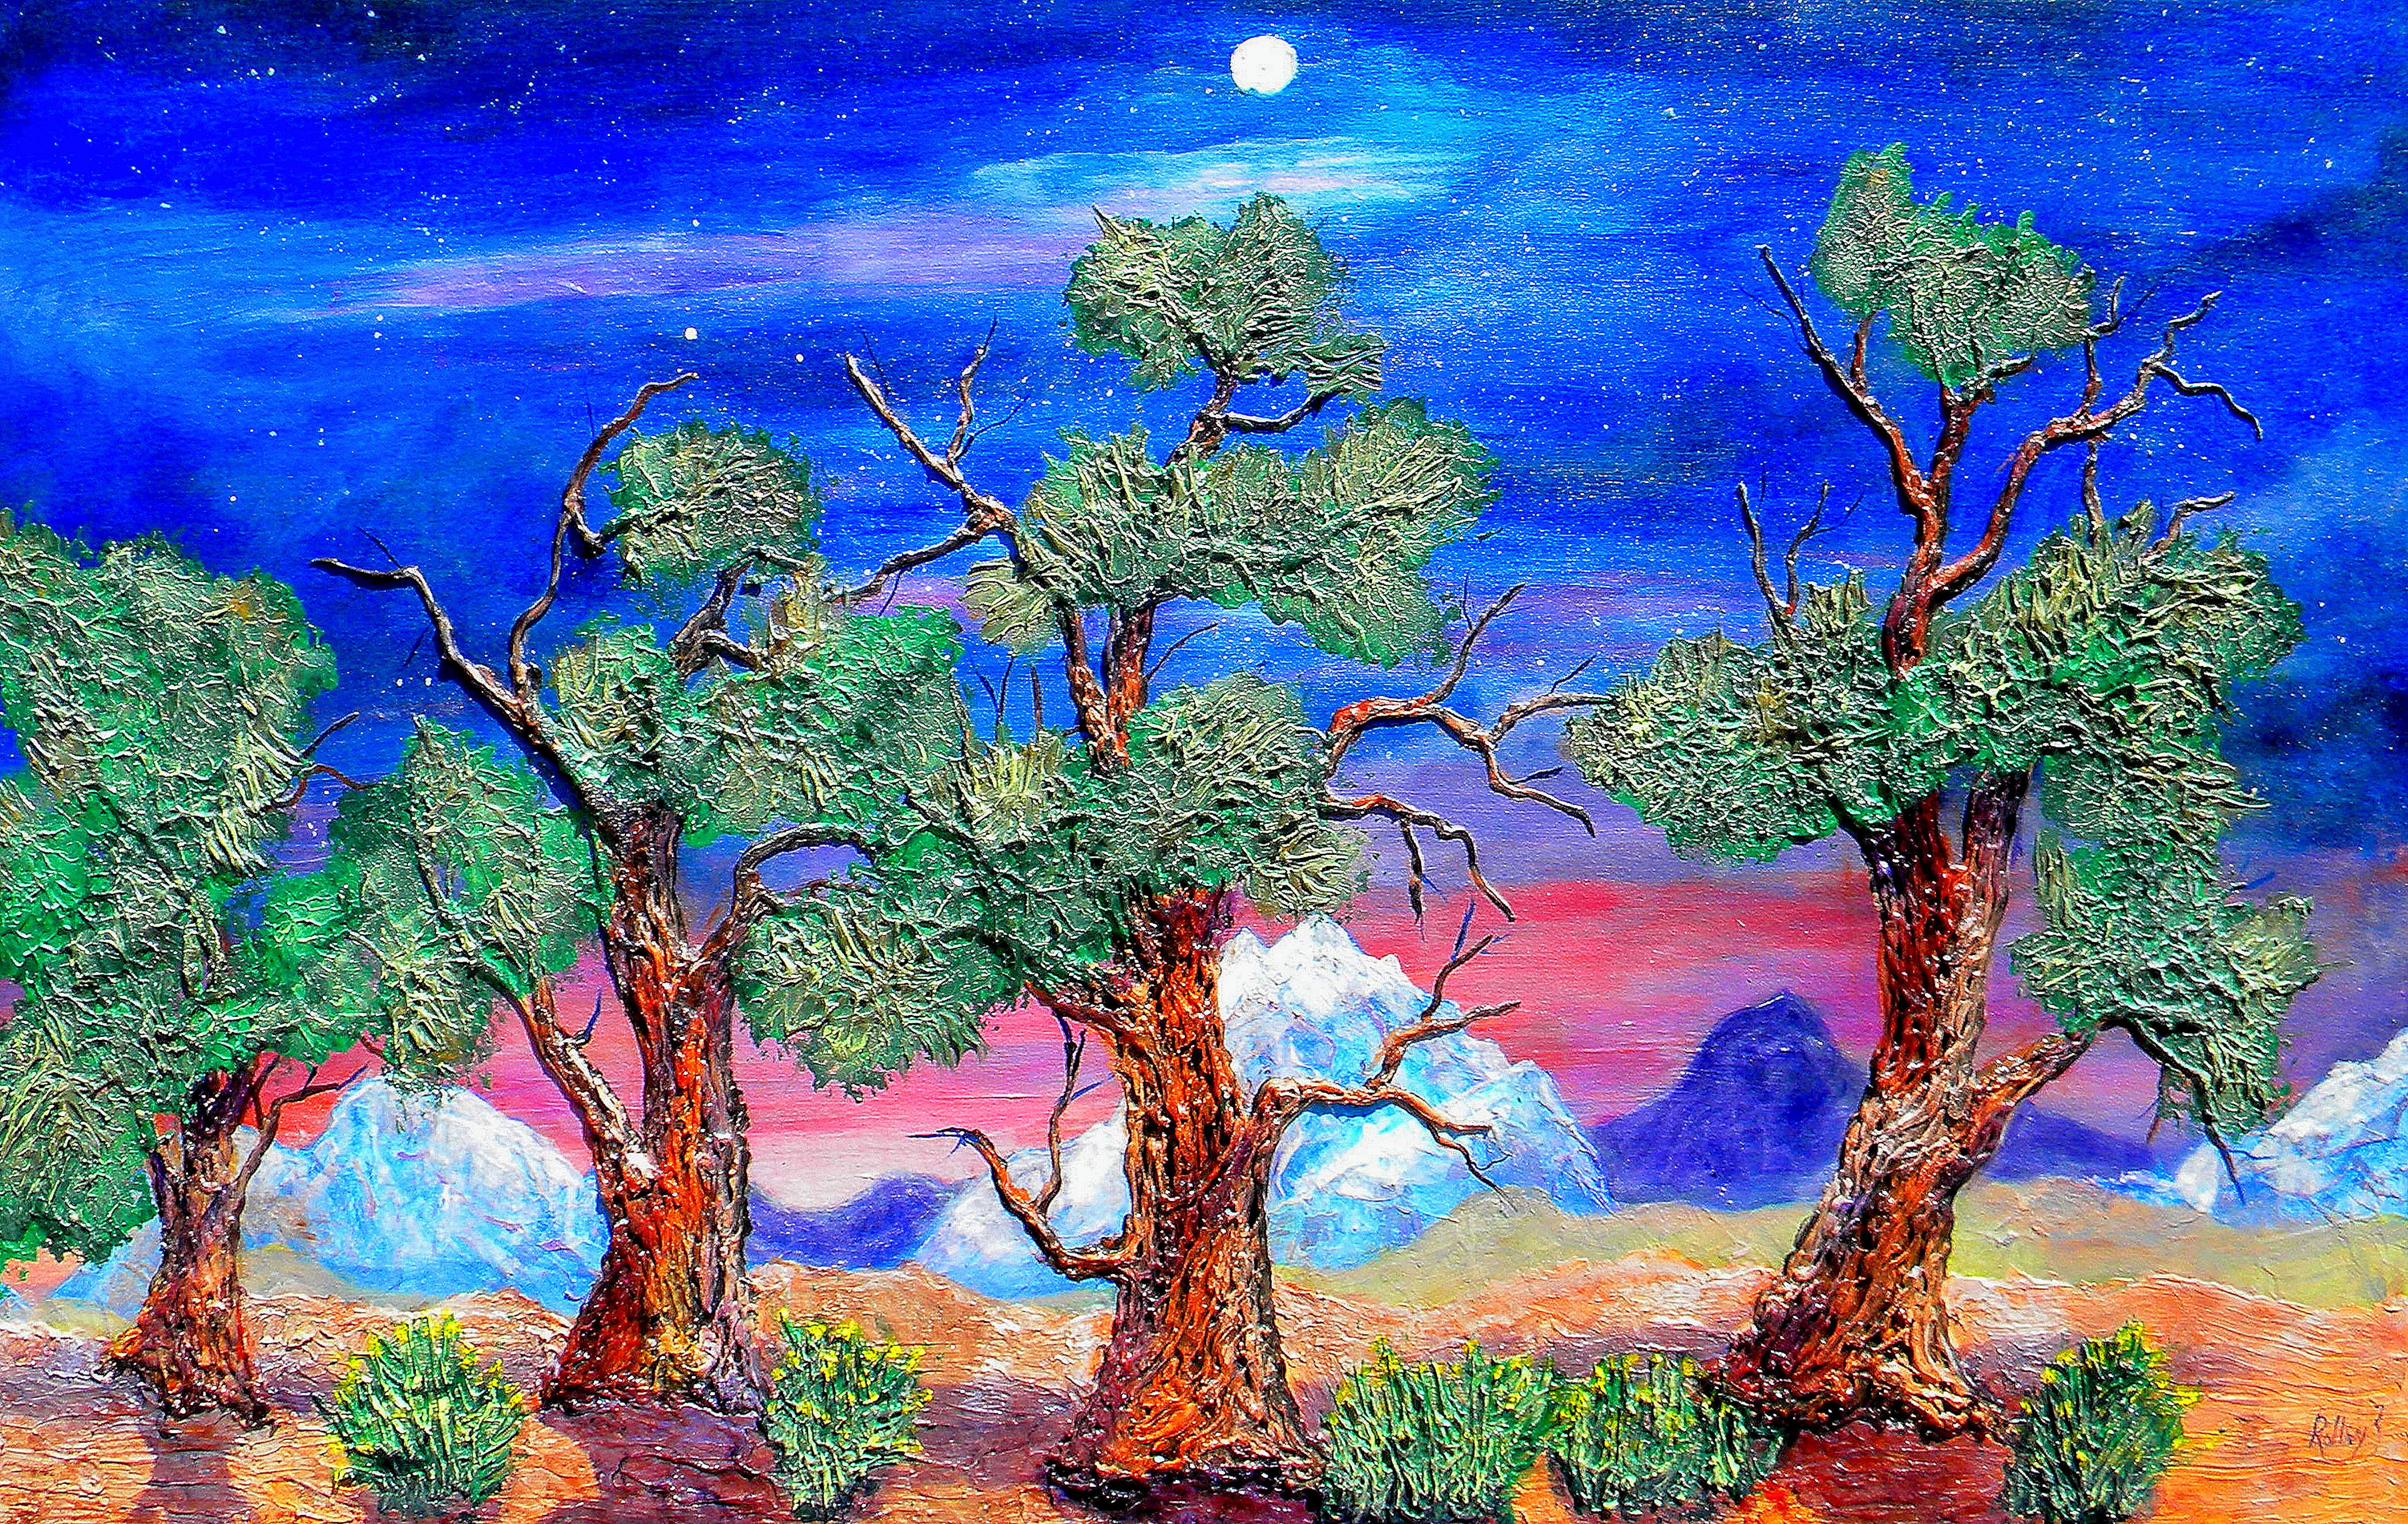 5000 YEAR OLD BRISTLECONE  PINES $1200 24x48in. HIGHLIGHTED WITH GLOW IN DARK LUMINESCENT PAINT